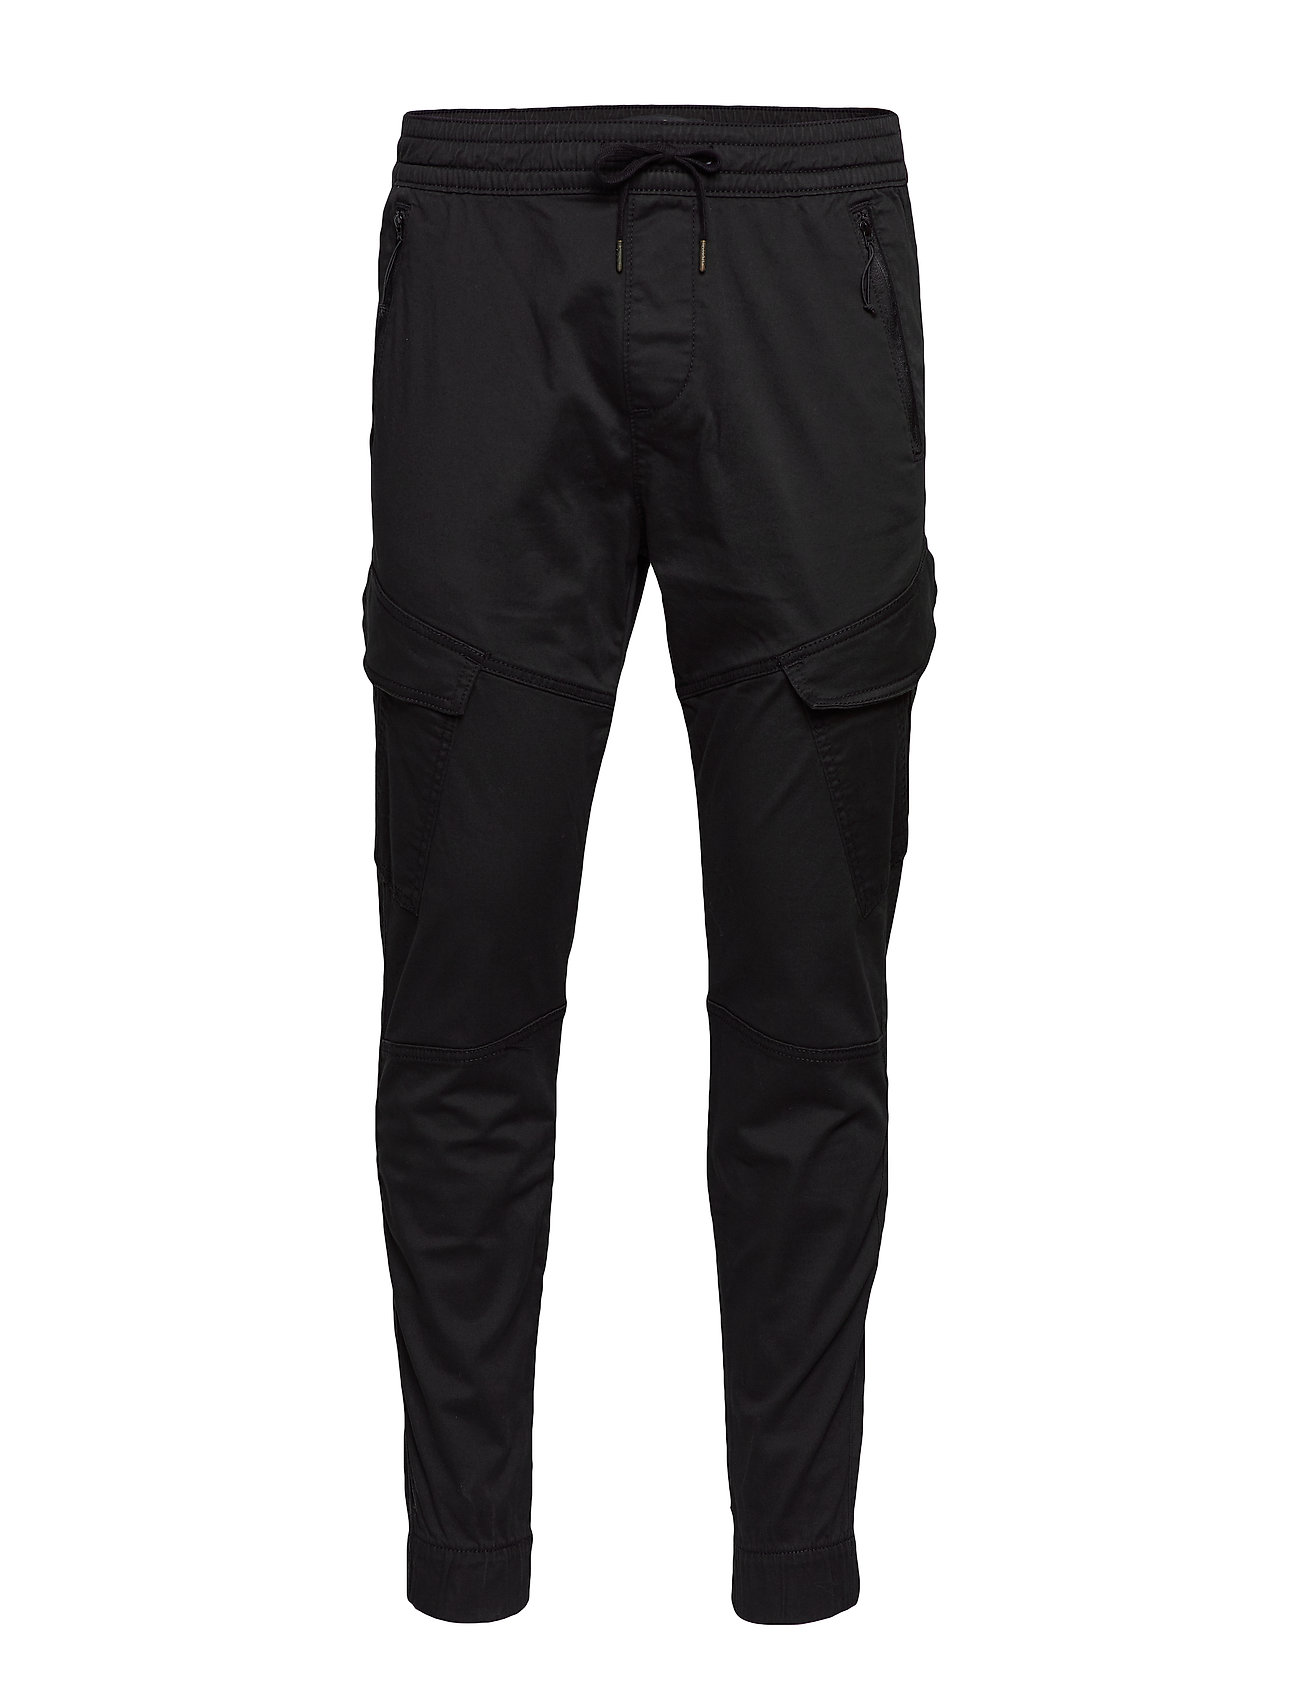 Image of Jogger Cargo Trousers Cargo Pants Sort Hollister (3285600447)